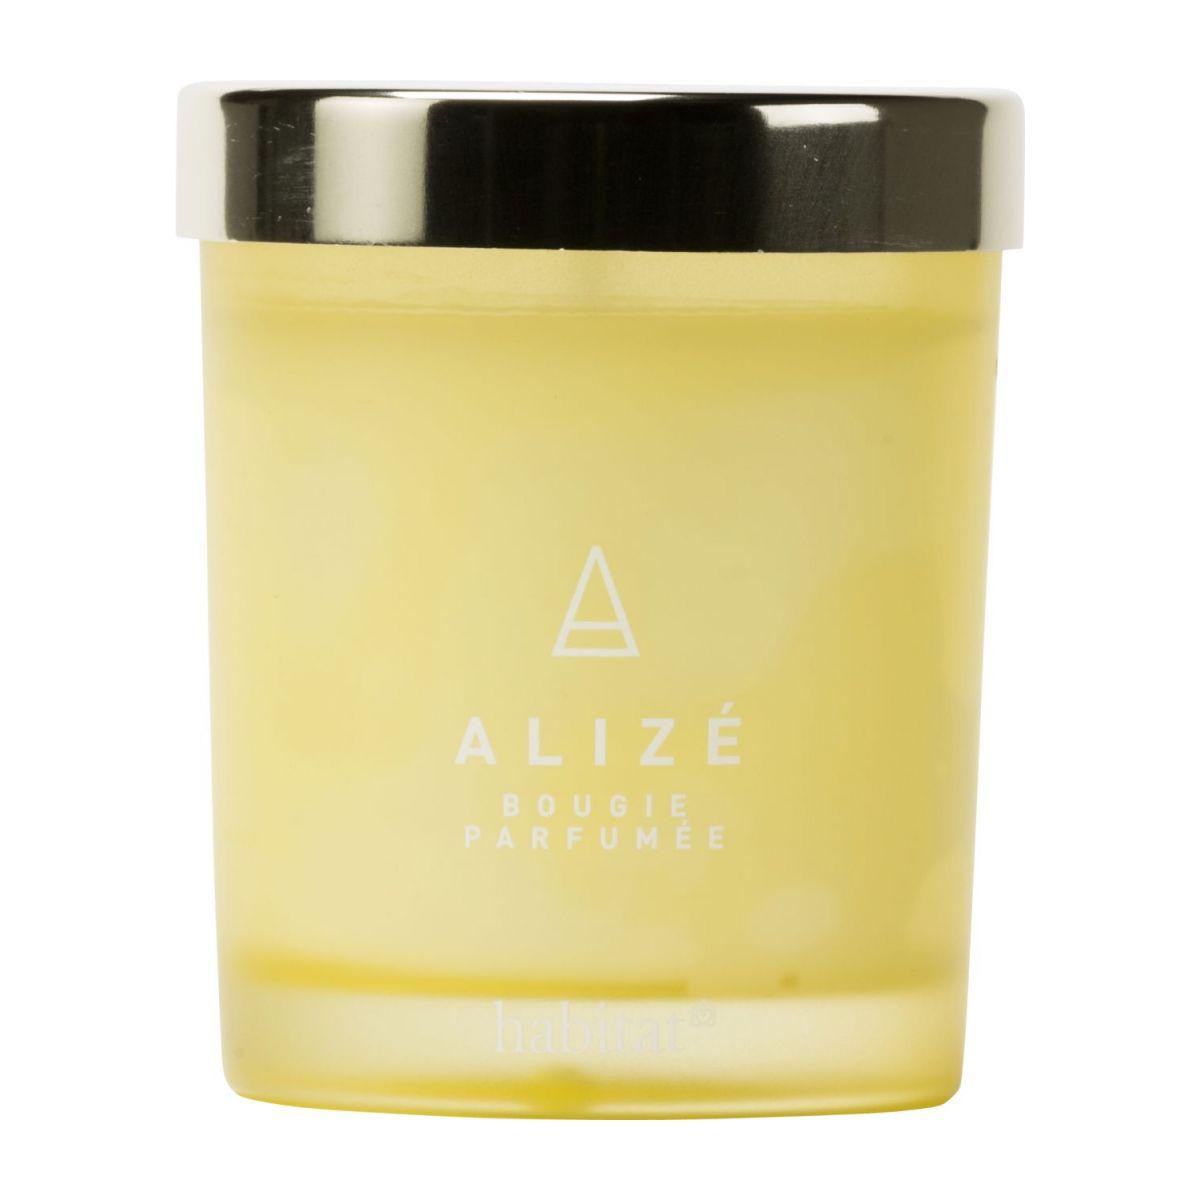 Alizée small scented candle n°1